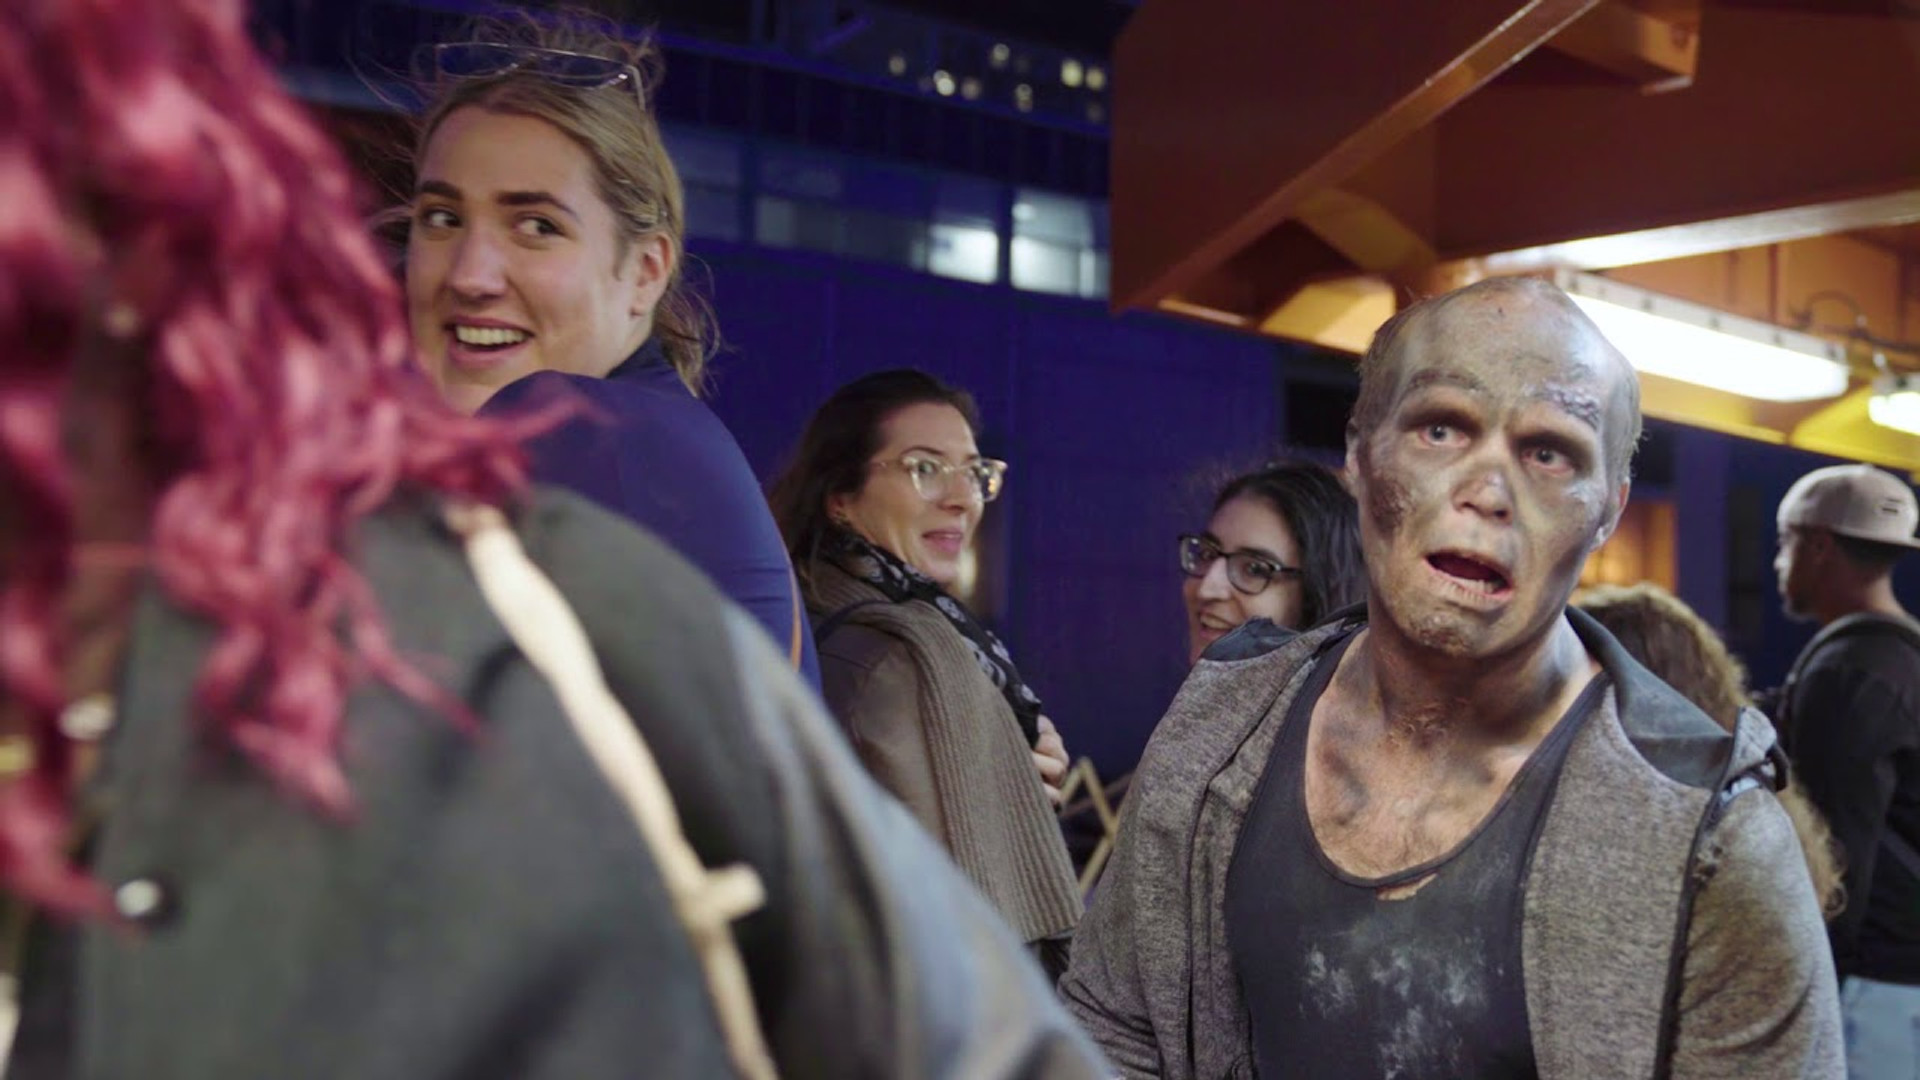 Budlight: Zombies